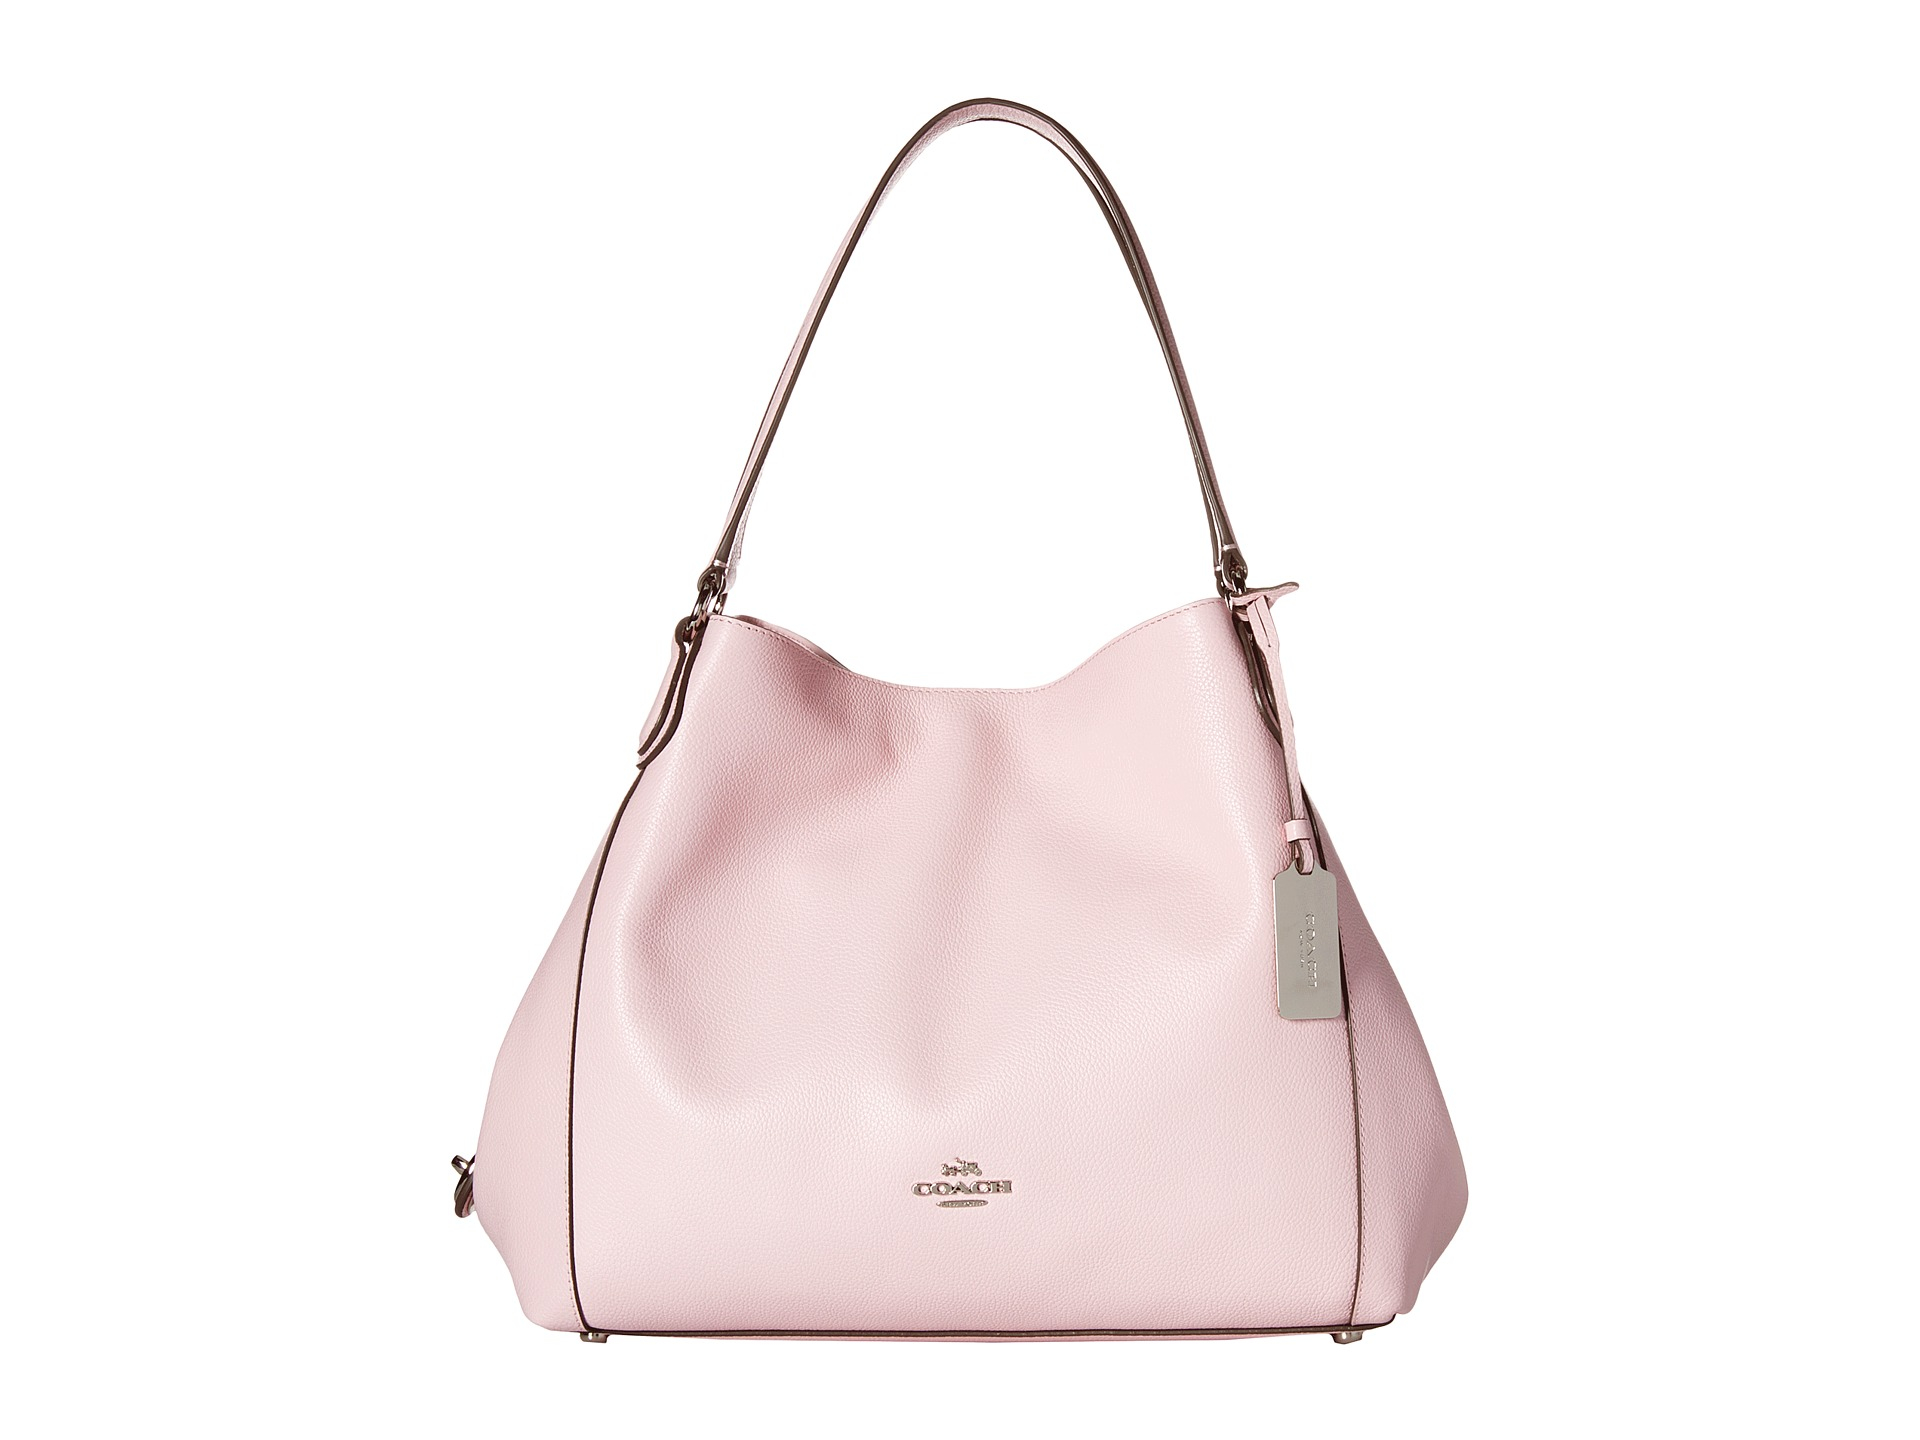 699709fcd0b5 ... buy lyst coach refined pebble leather edie 31 shoulder bag in pink  3822d 3e8a9